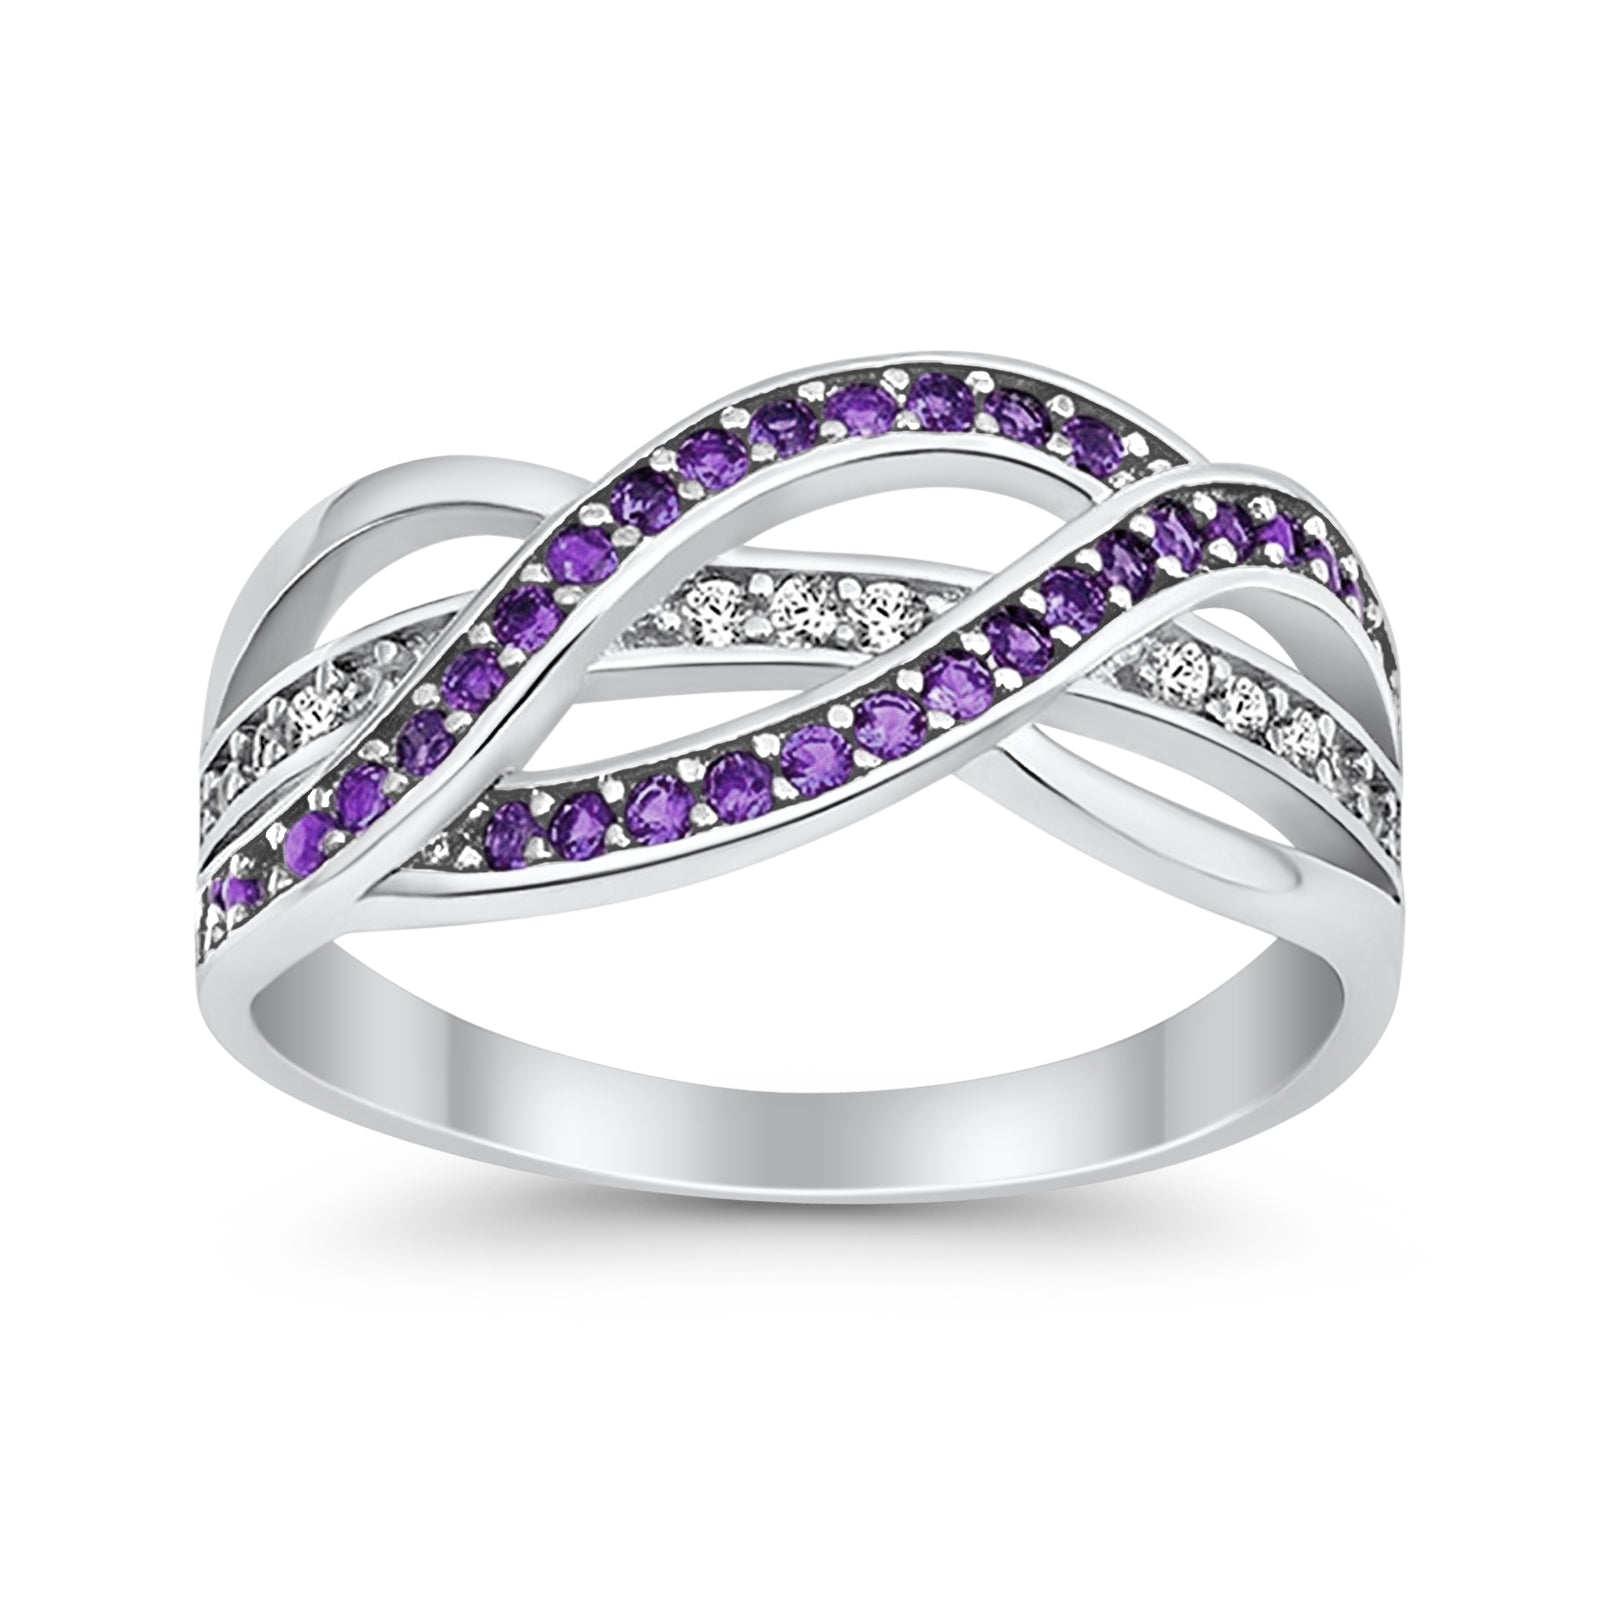 Weave Knot Ring Crisscross Crossover Simulated Amethyst Round CZ 925 Sterling Silver